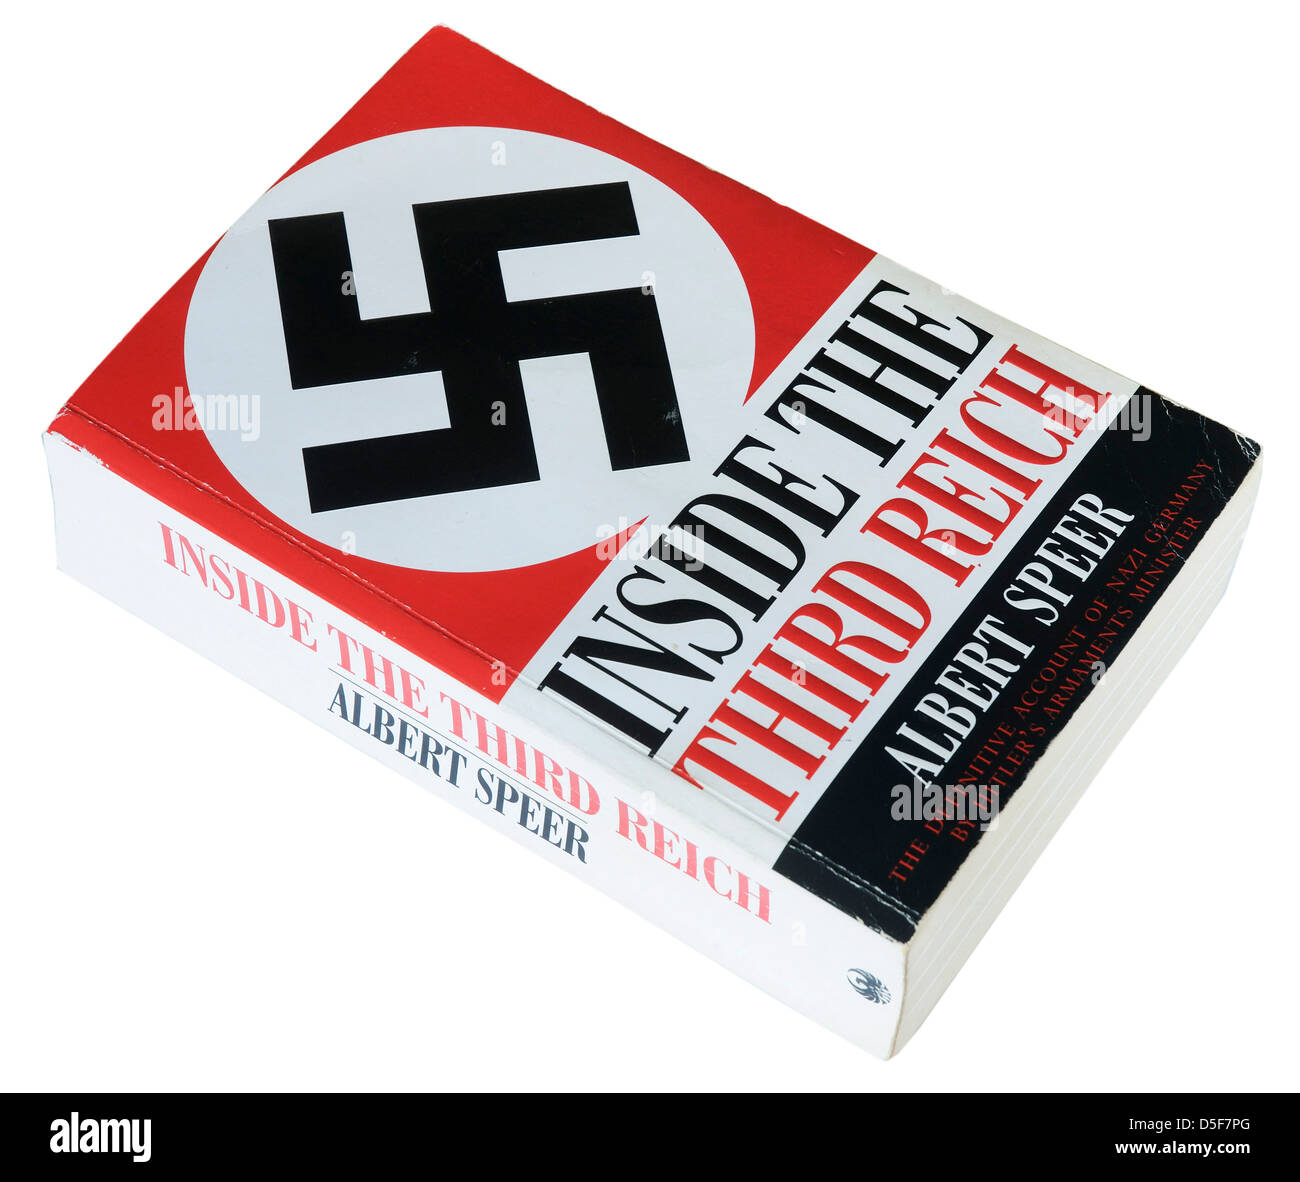 Inside the Third Reich by Albert Speer - Stock Image